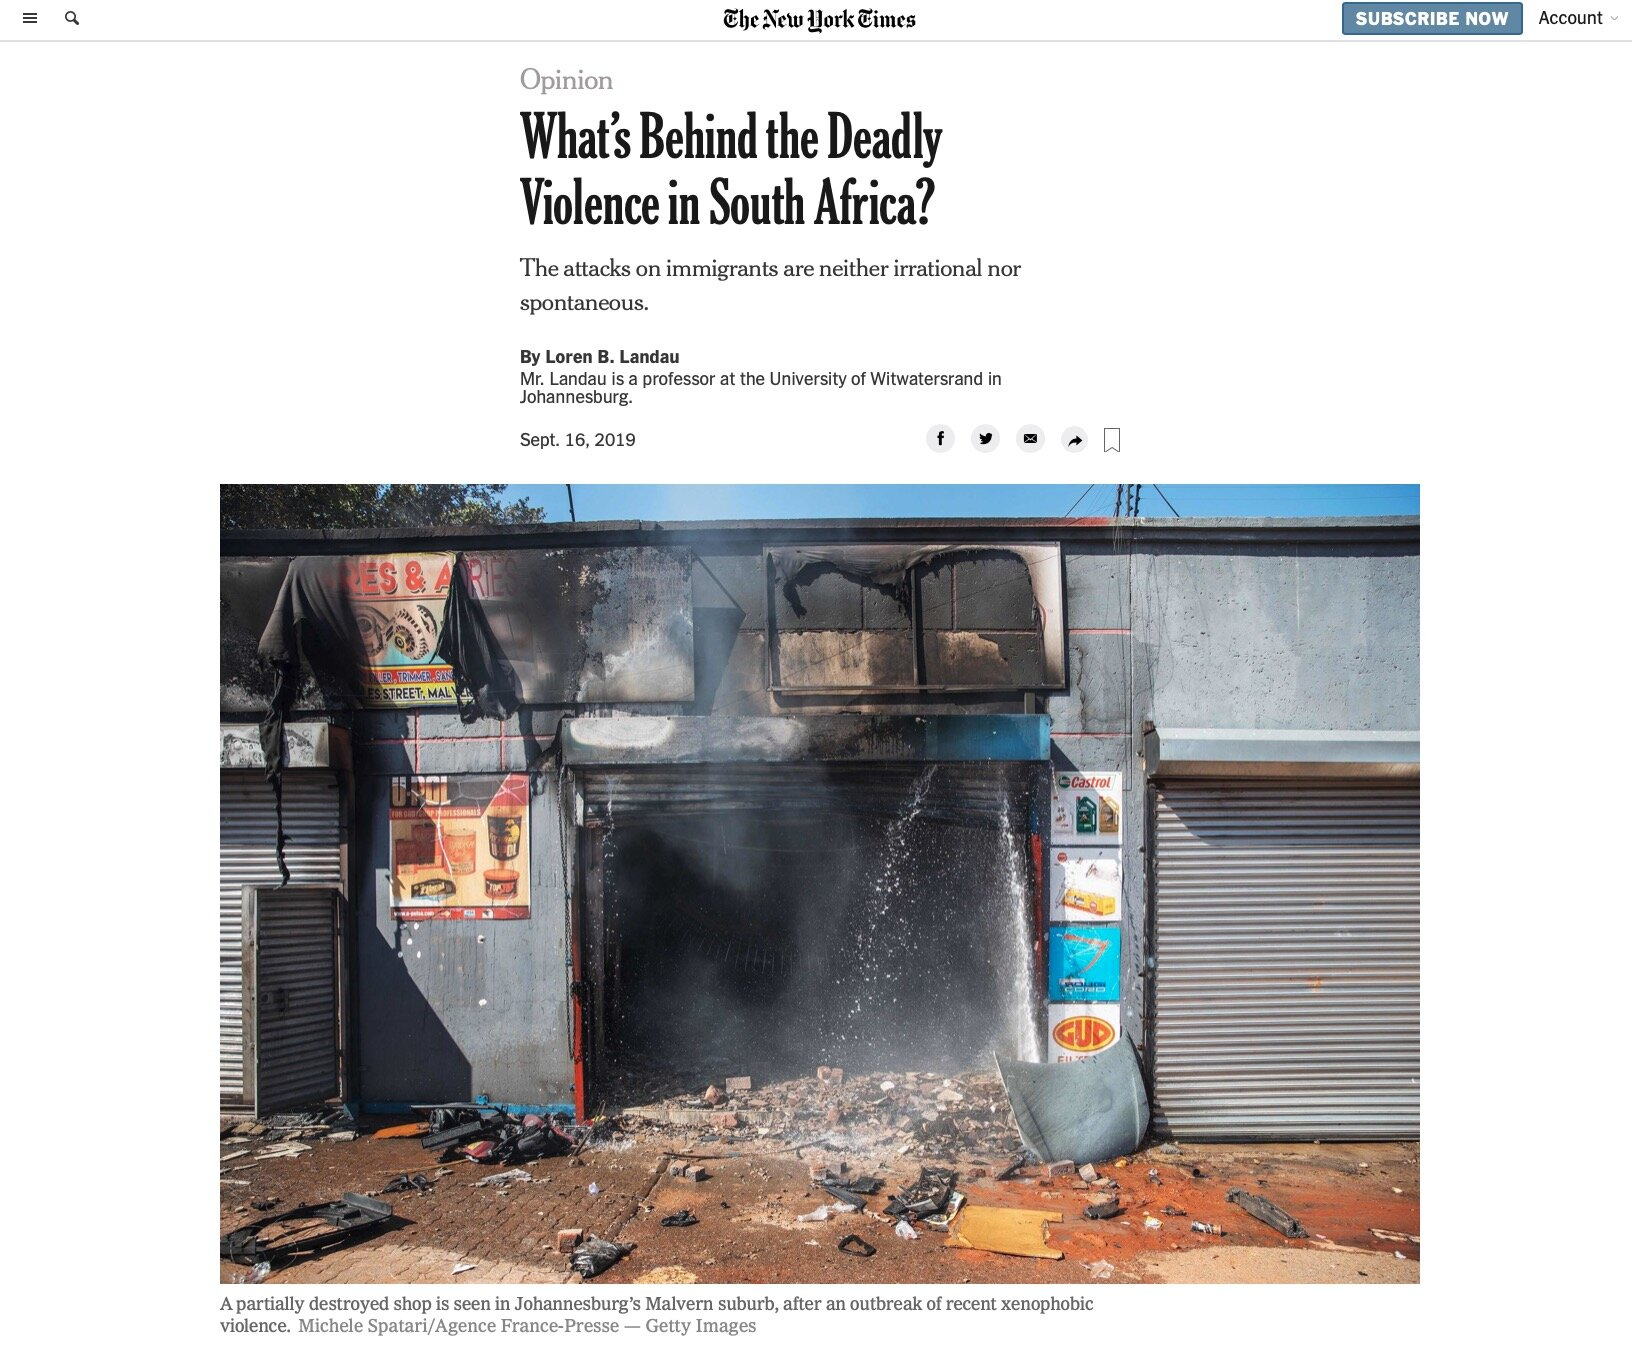 The New York Times - 16/09/2019